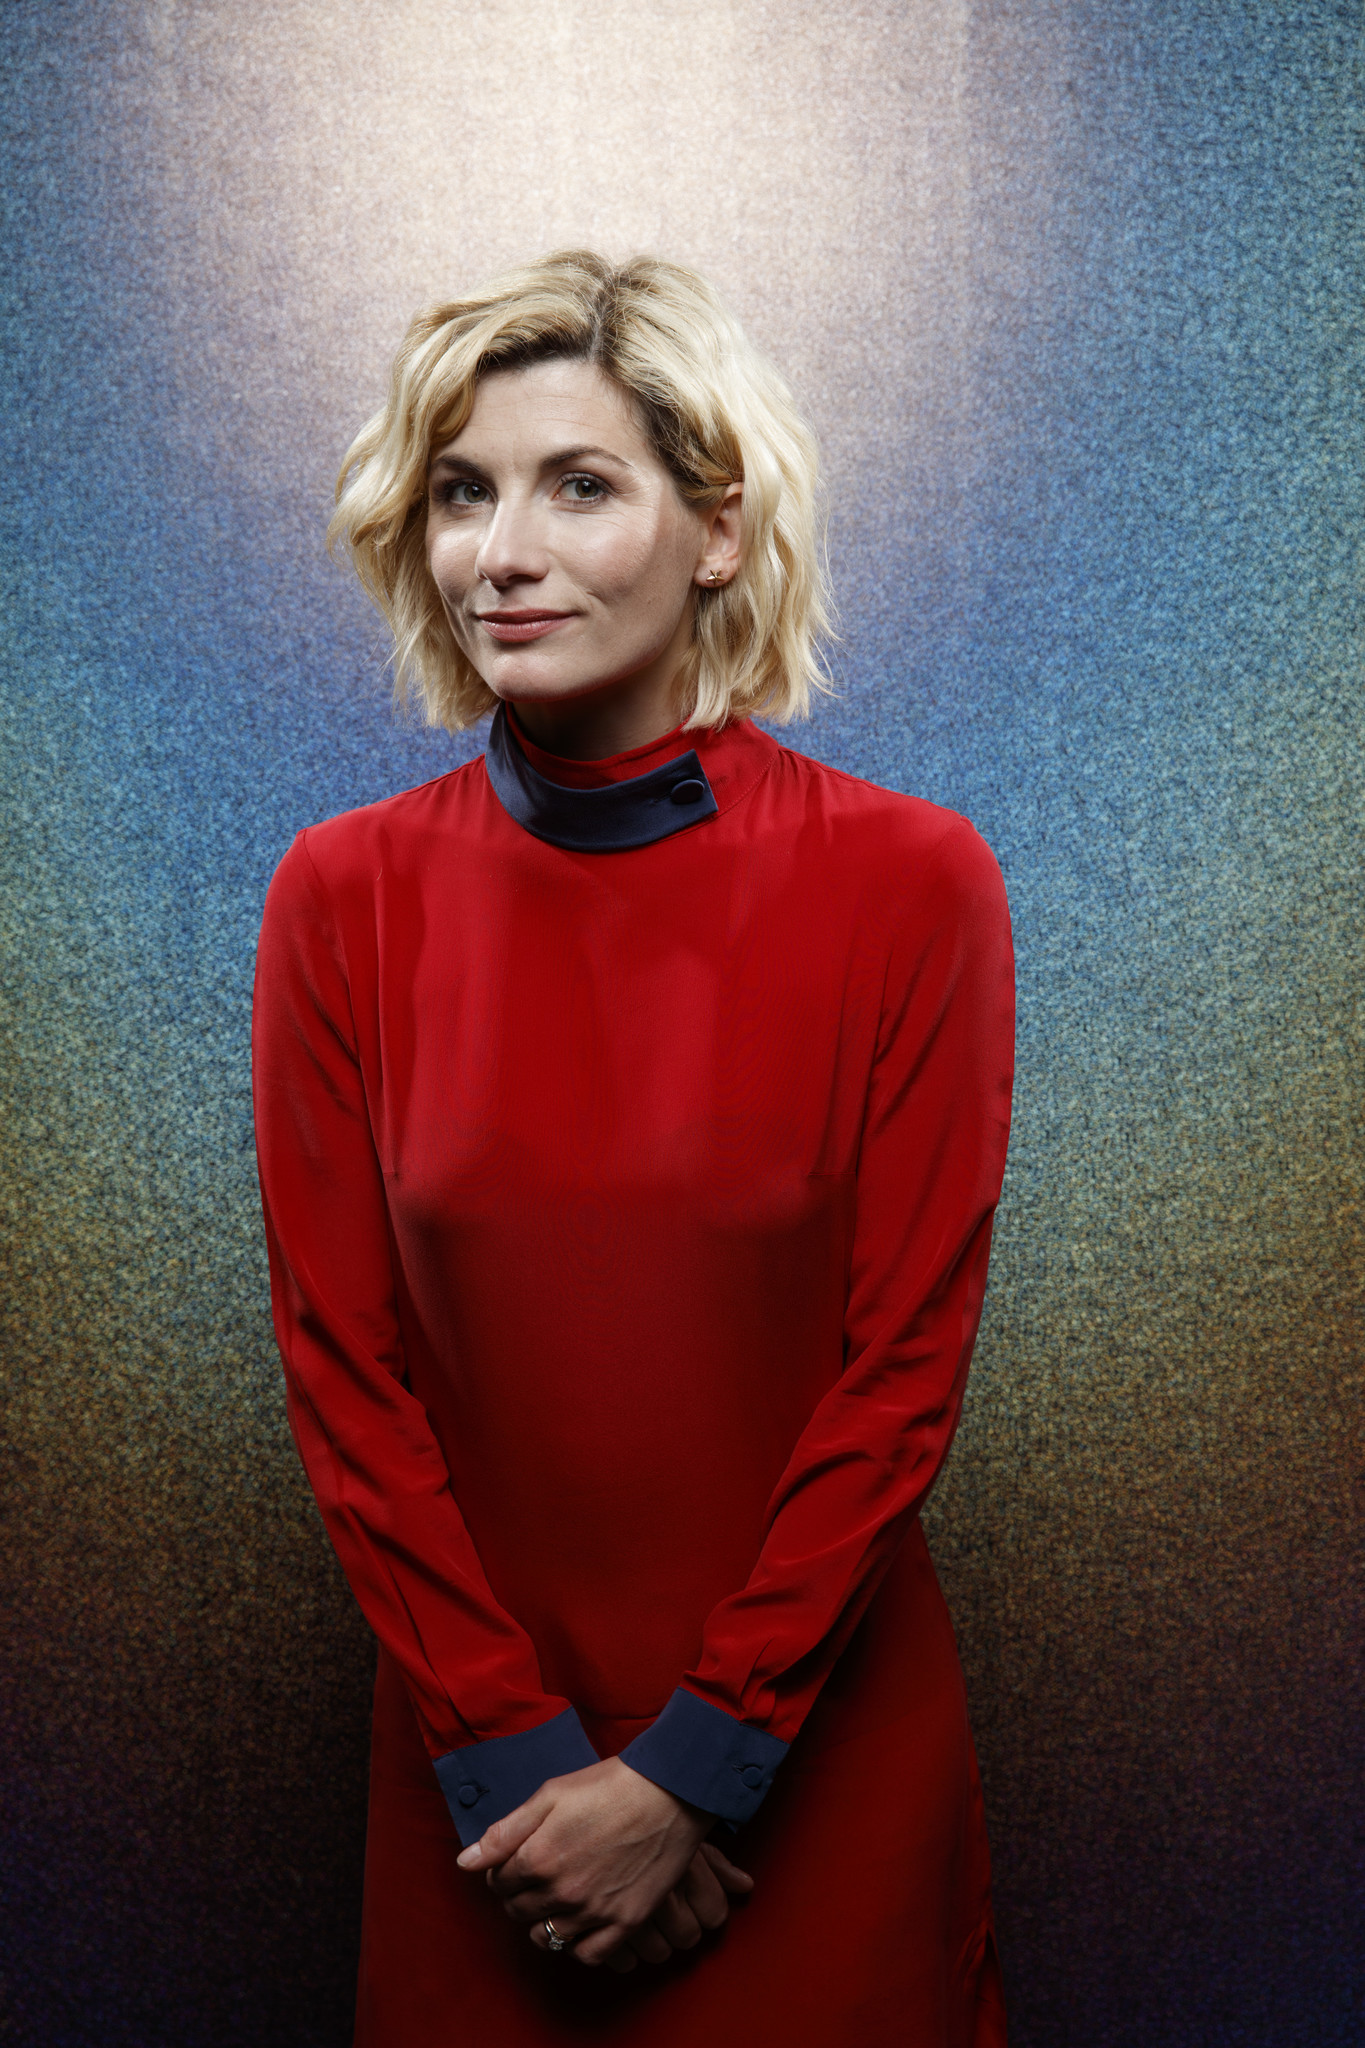 """SAN DIEGO, CALIF. -- JULY 21, 2018-- Jodie Whittaker from the television series """"Doctor Who,"""" photog"""